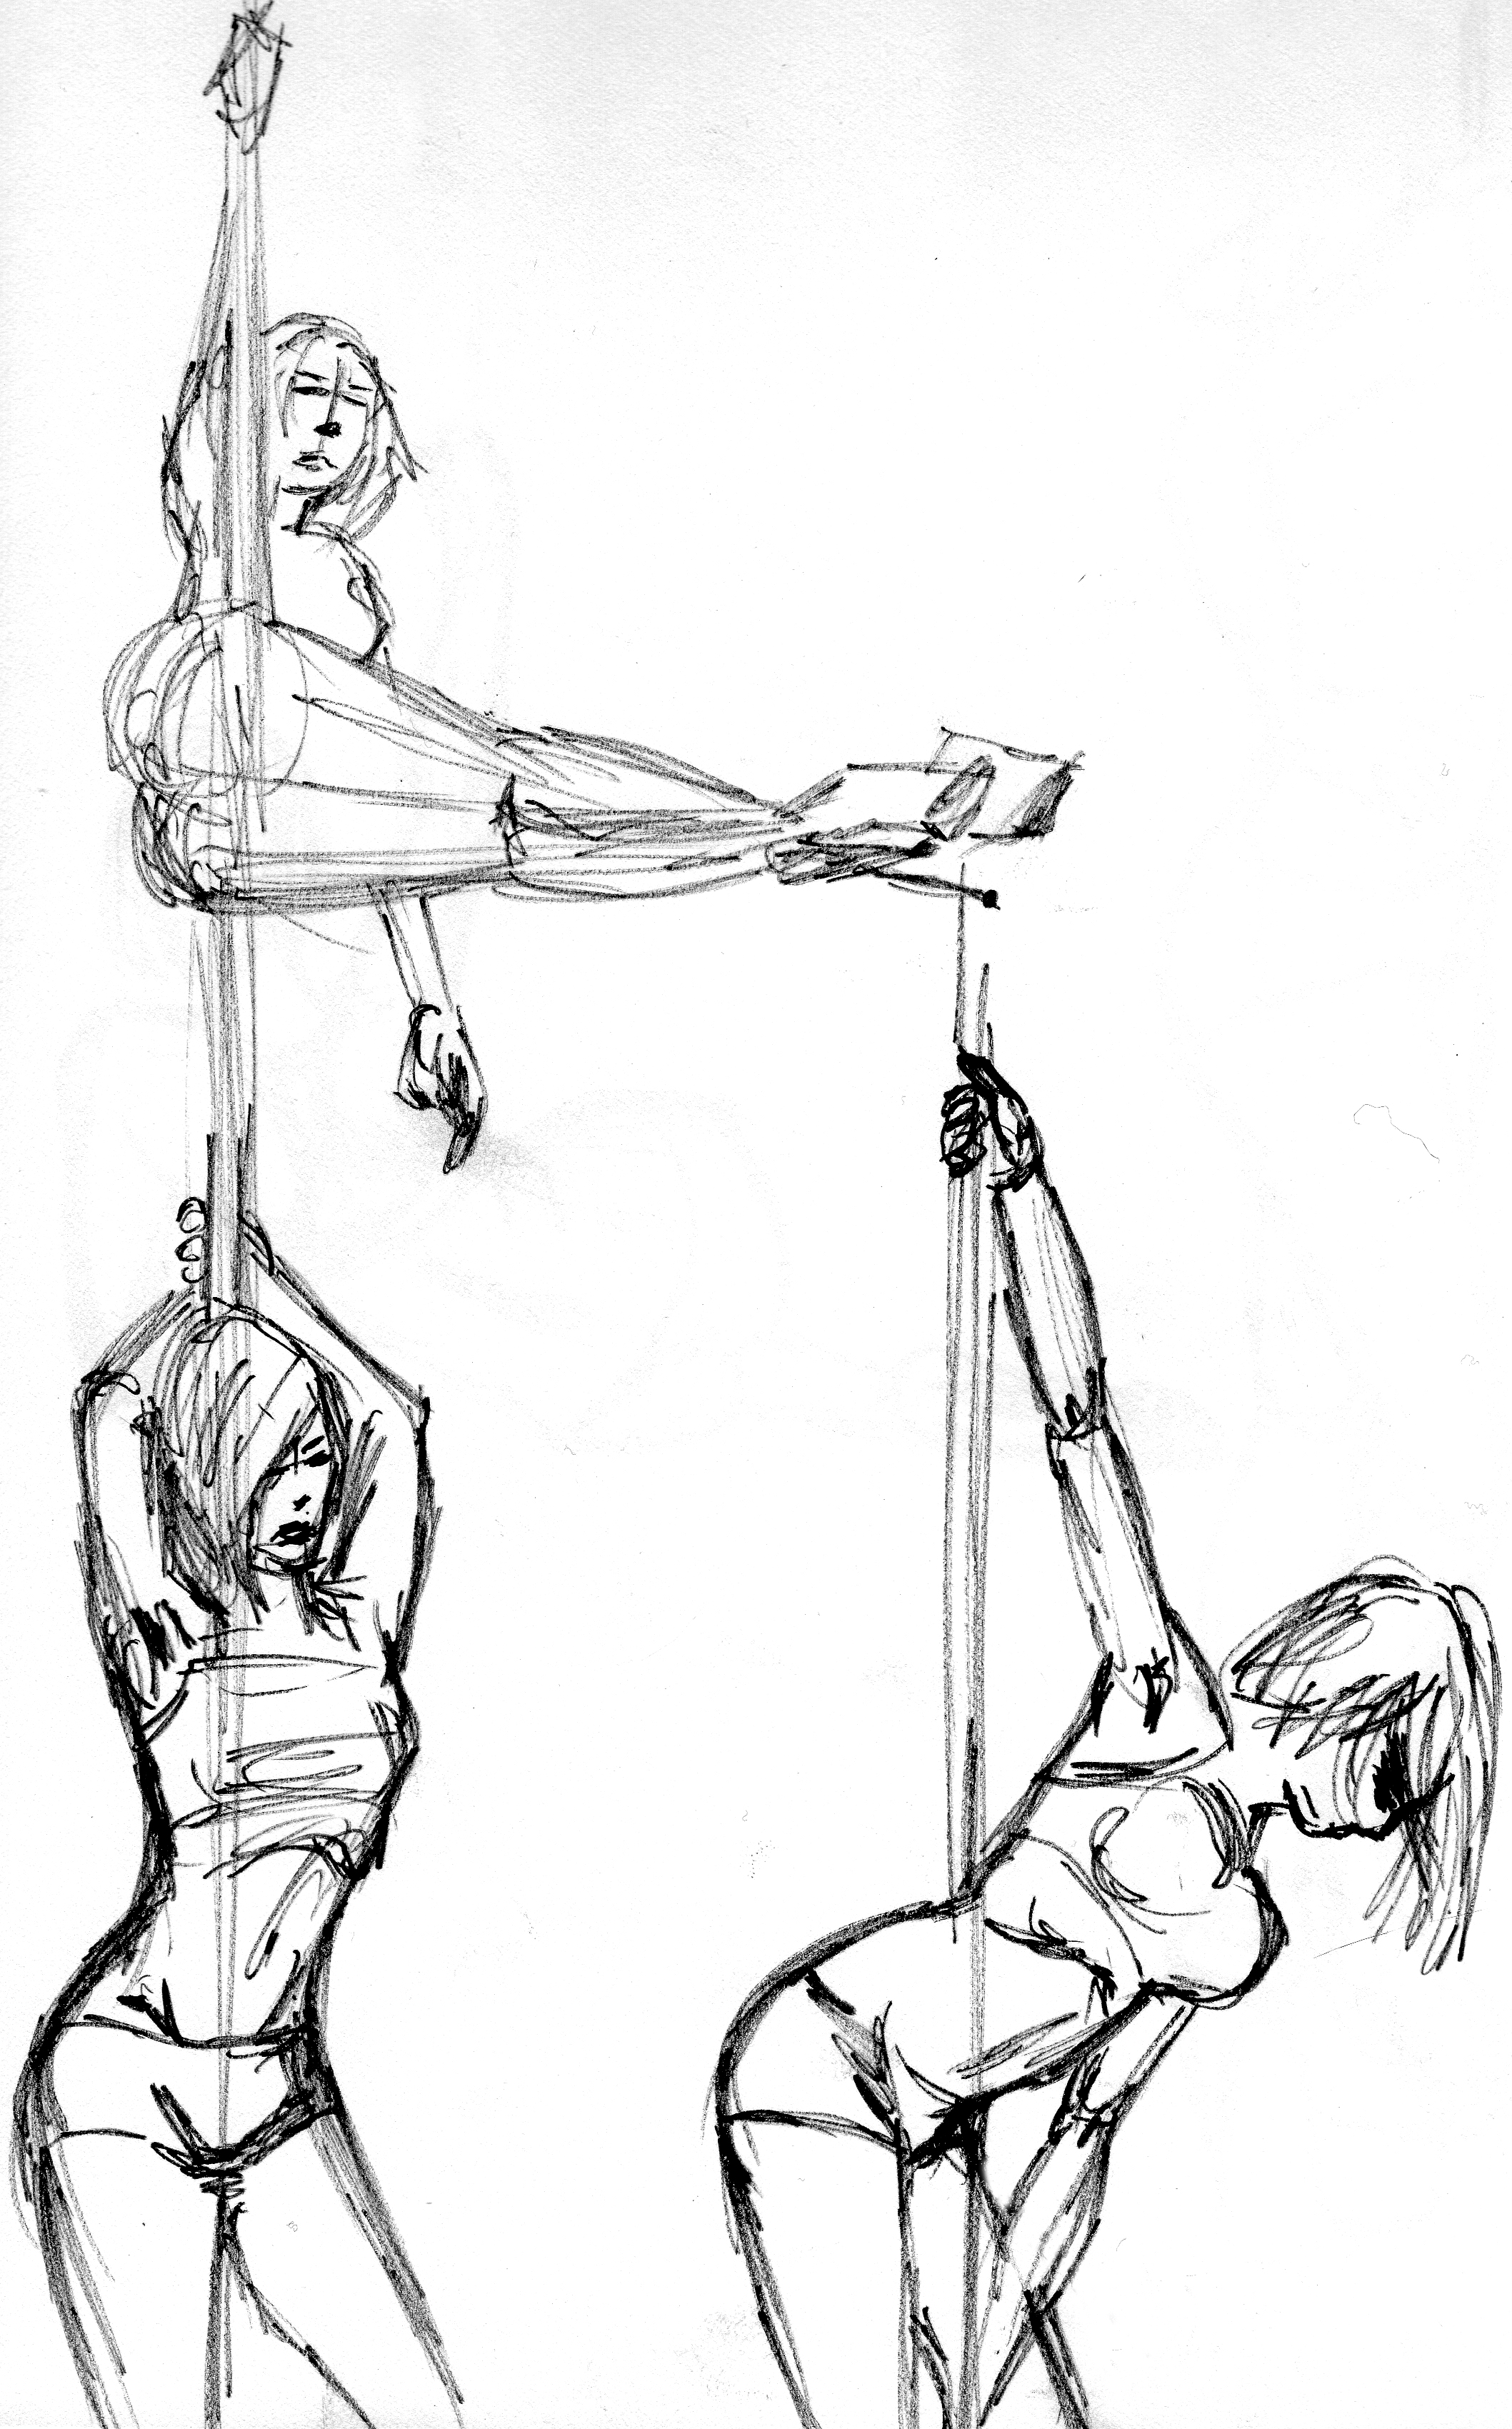 Pole Dancers - Marker Sketch